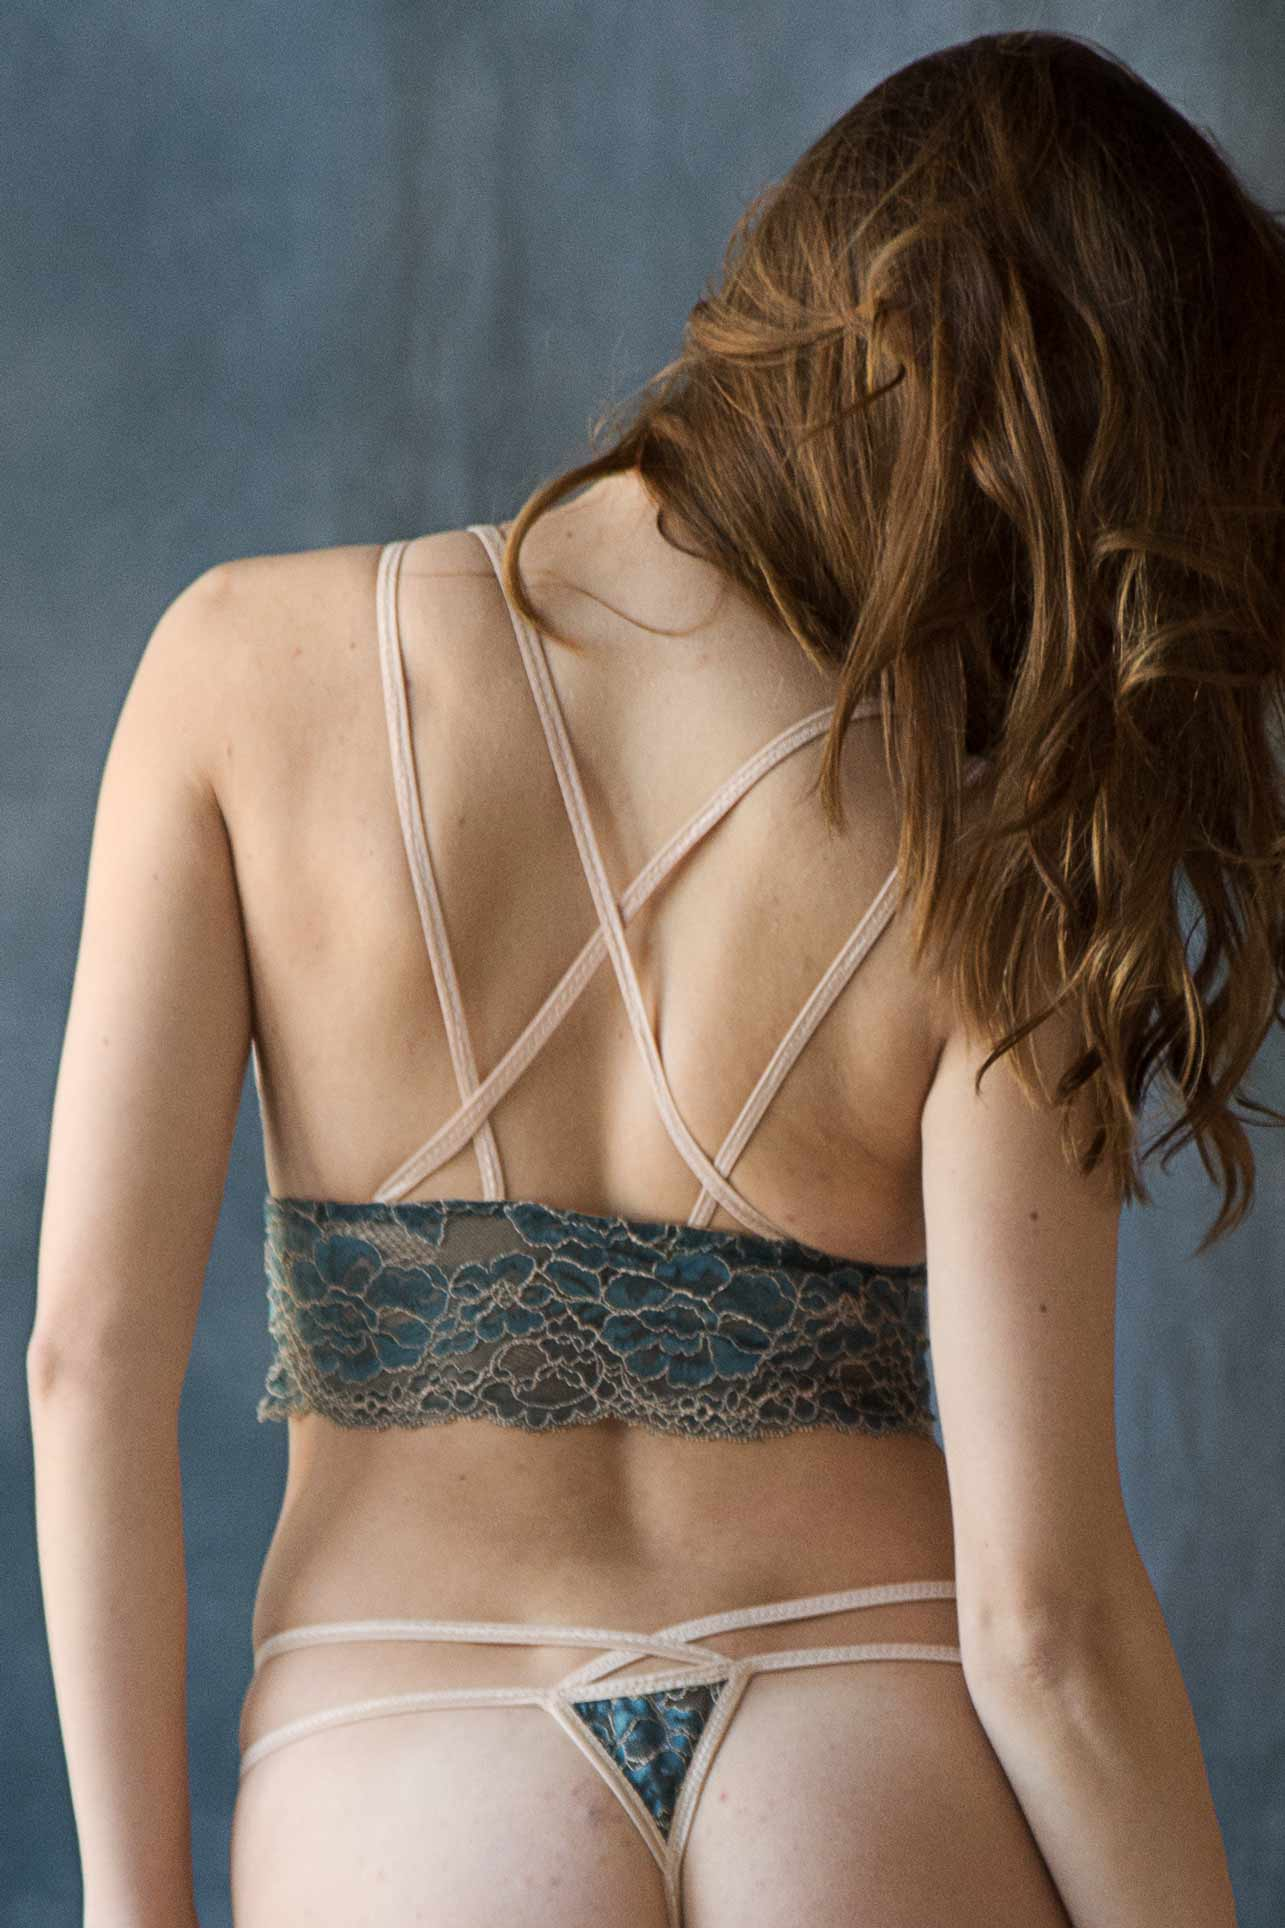 86379b5e44 Bralette Outfits Ideas - How to Style a Bralette